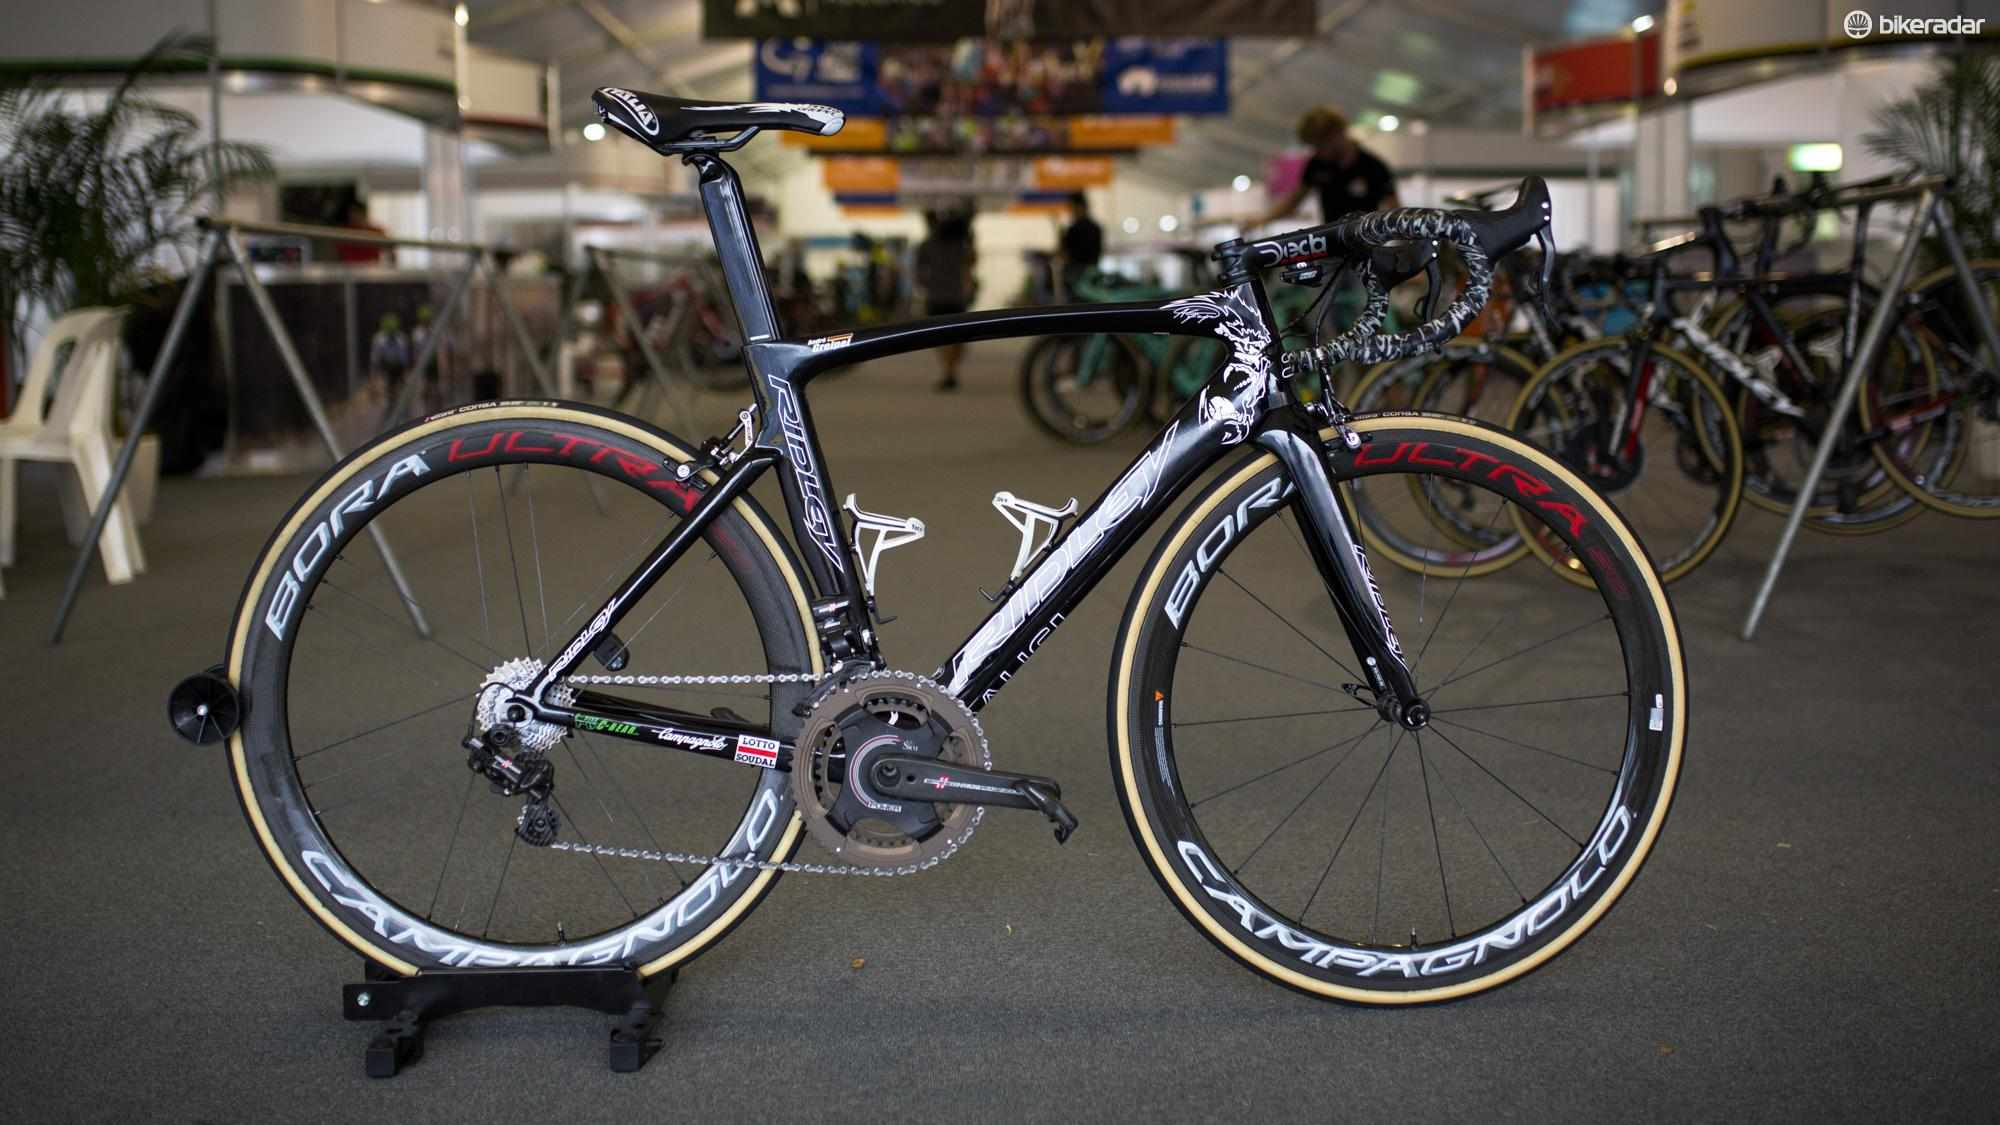 It's no surprise to see Andre Greipel opt for the Ridley Noah SL over the Helium SLX